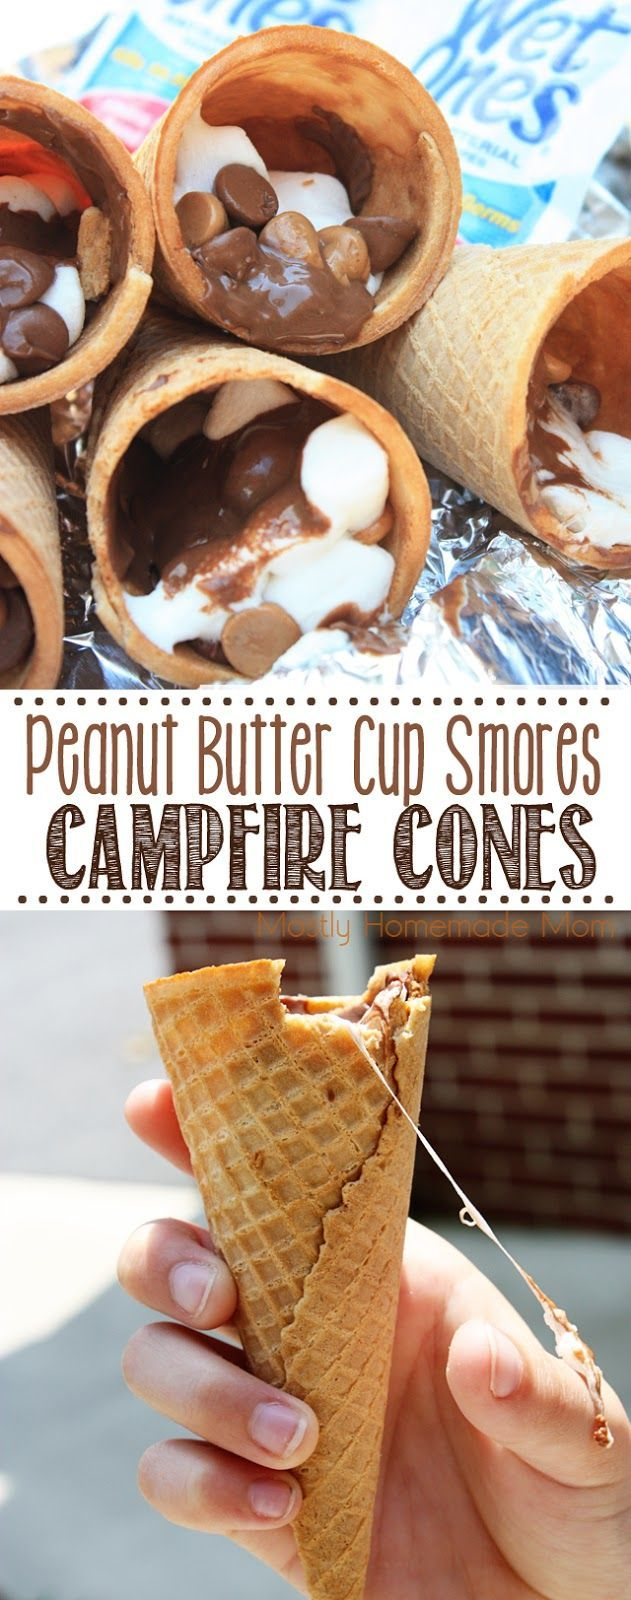 Peanut Butter Cup Smores Campfire Cones - Miniature peanut butter cups and marshmallows and roasted over a fire inside sugar cones - this is the perfect camping treat! #ad